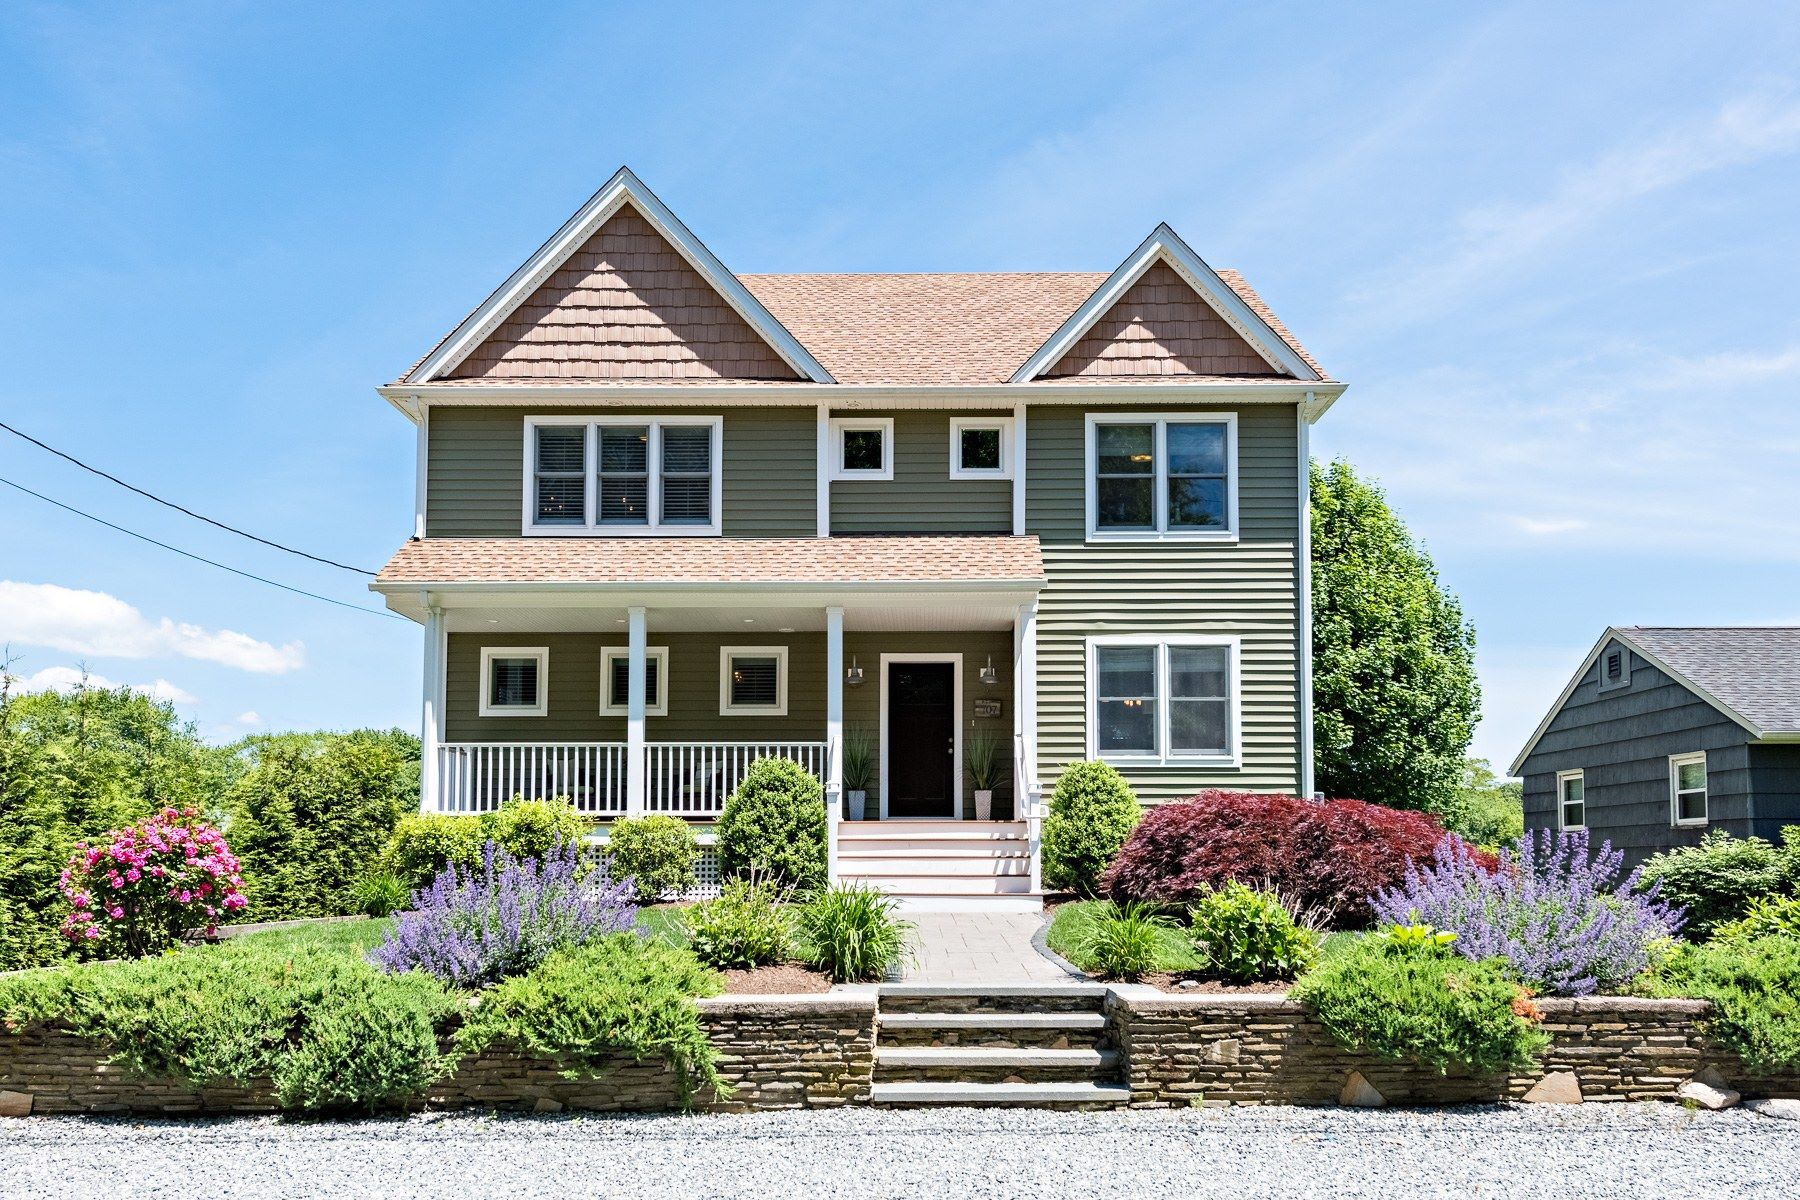 Single Family Homes for Sale at 707 Middlebridge Road South Kingstown, Rhode Island 02879 United States